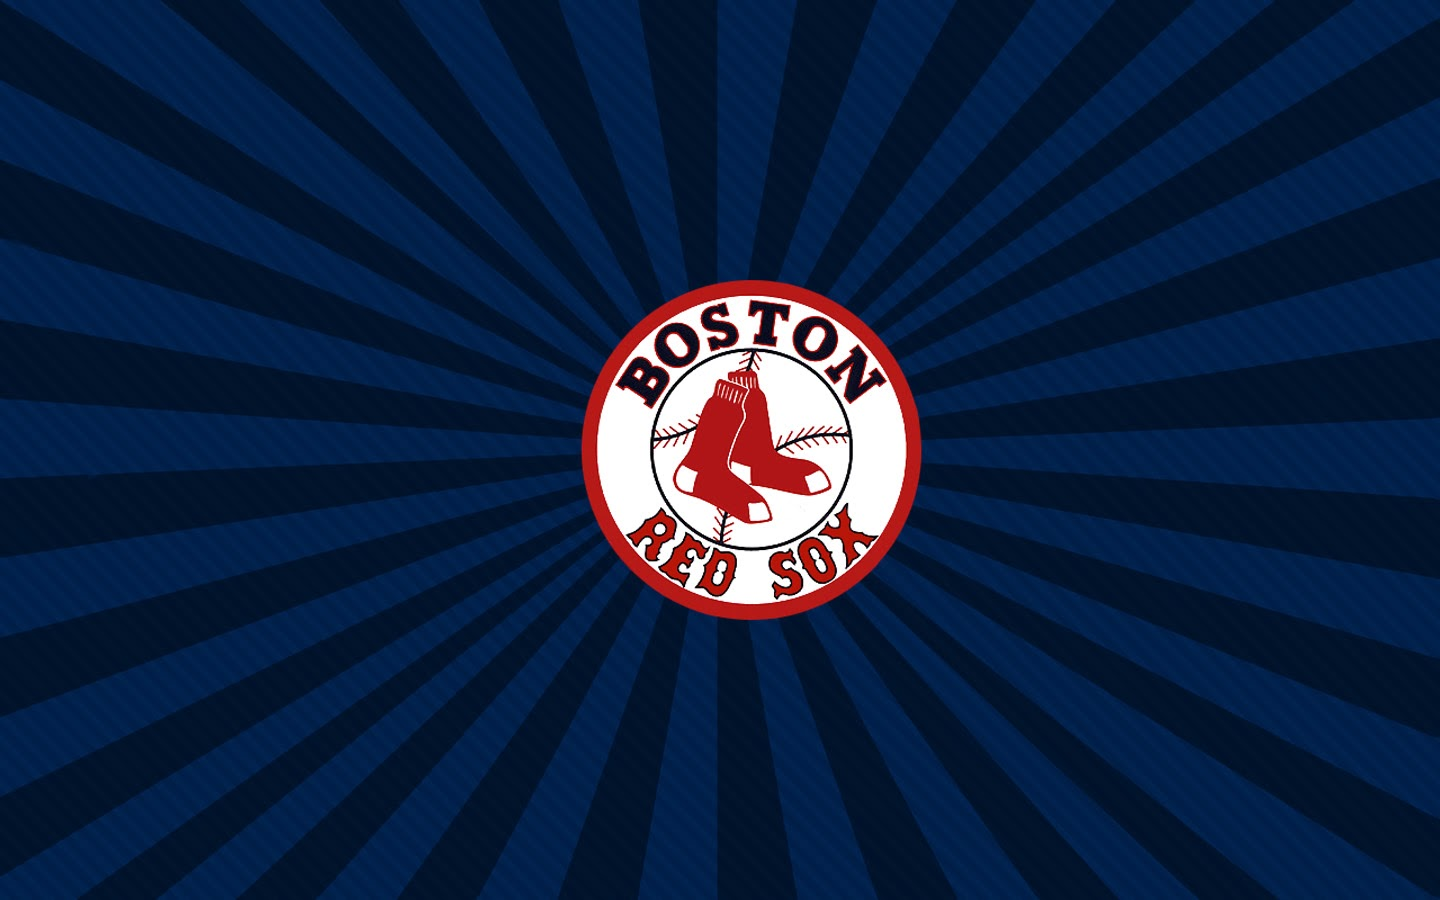 Boston Red Sox Wallpapers 2013   HD WallpapersPakistani 1440x900